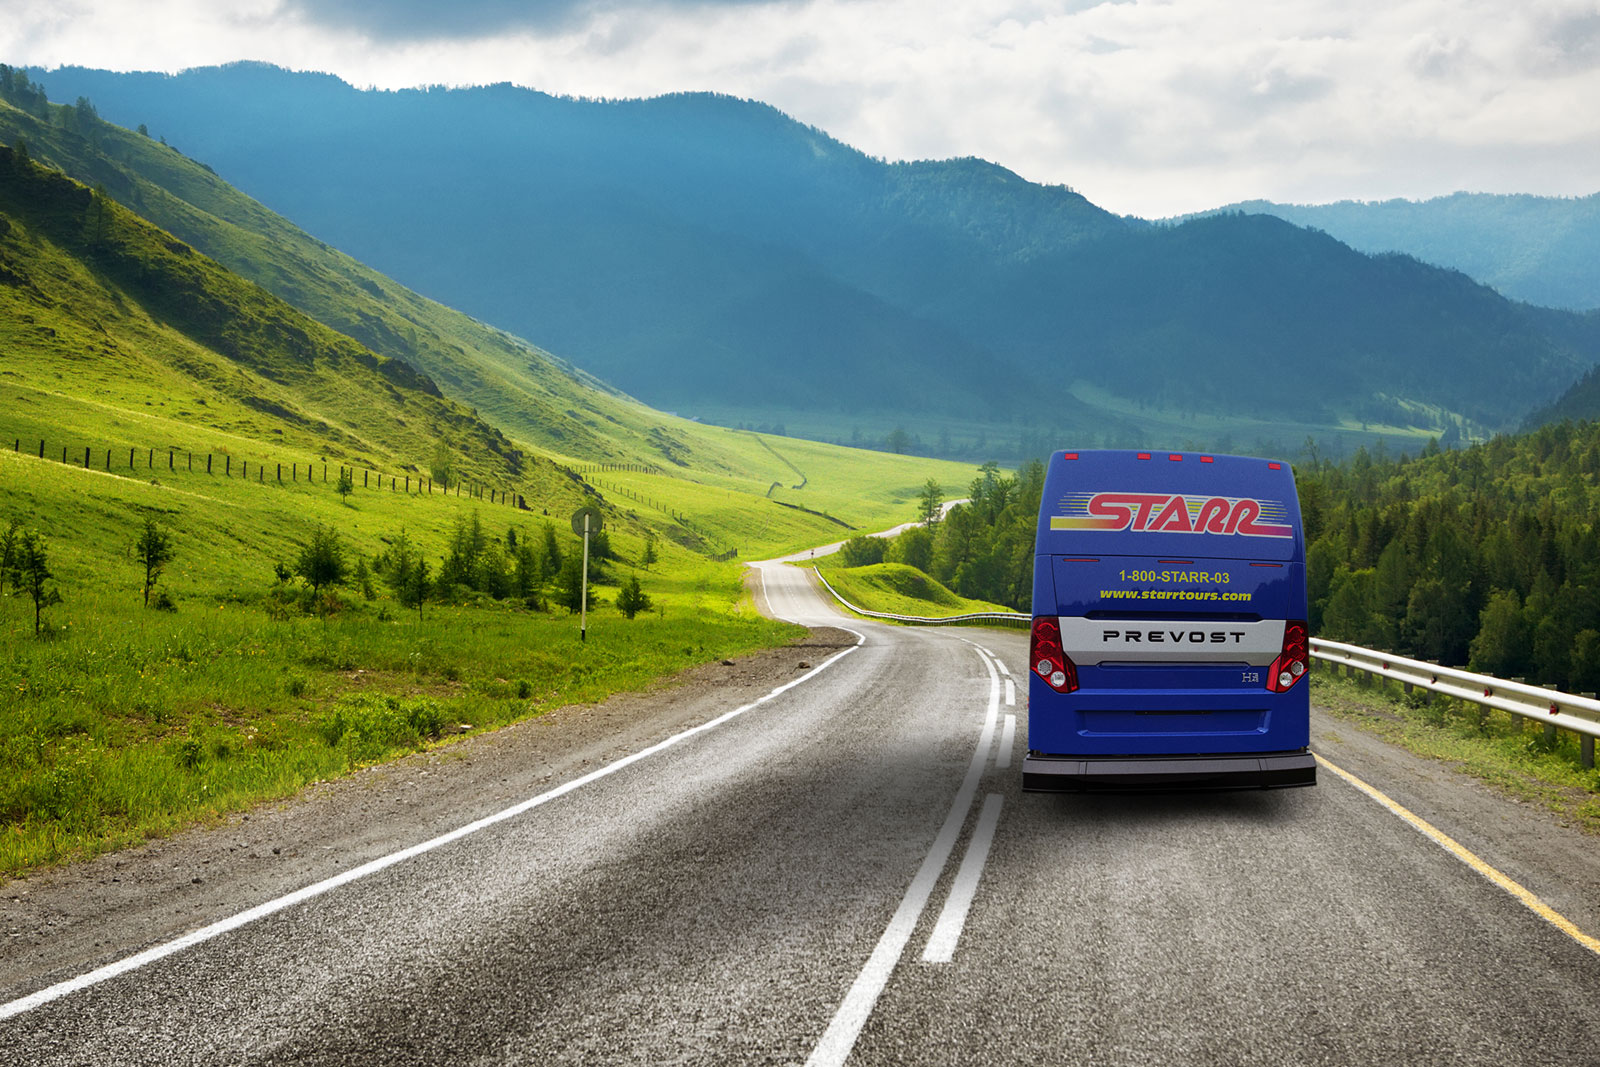 Bus Charters Departing From Nj De Pa And Md